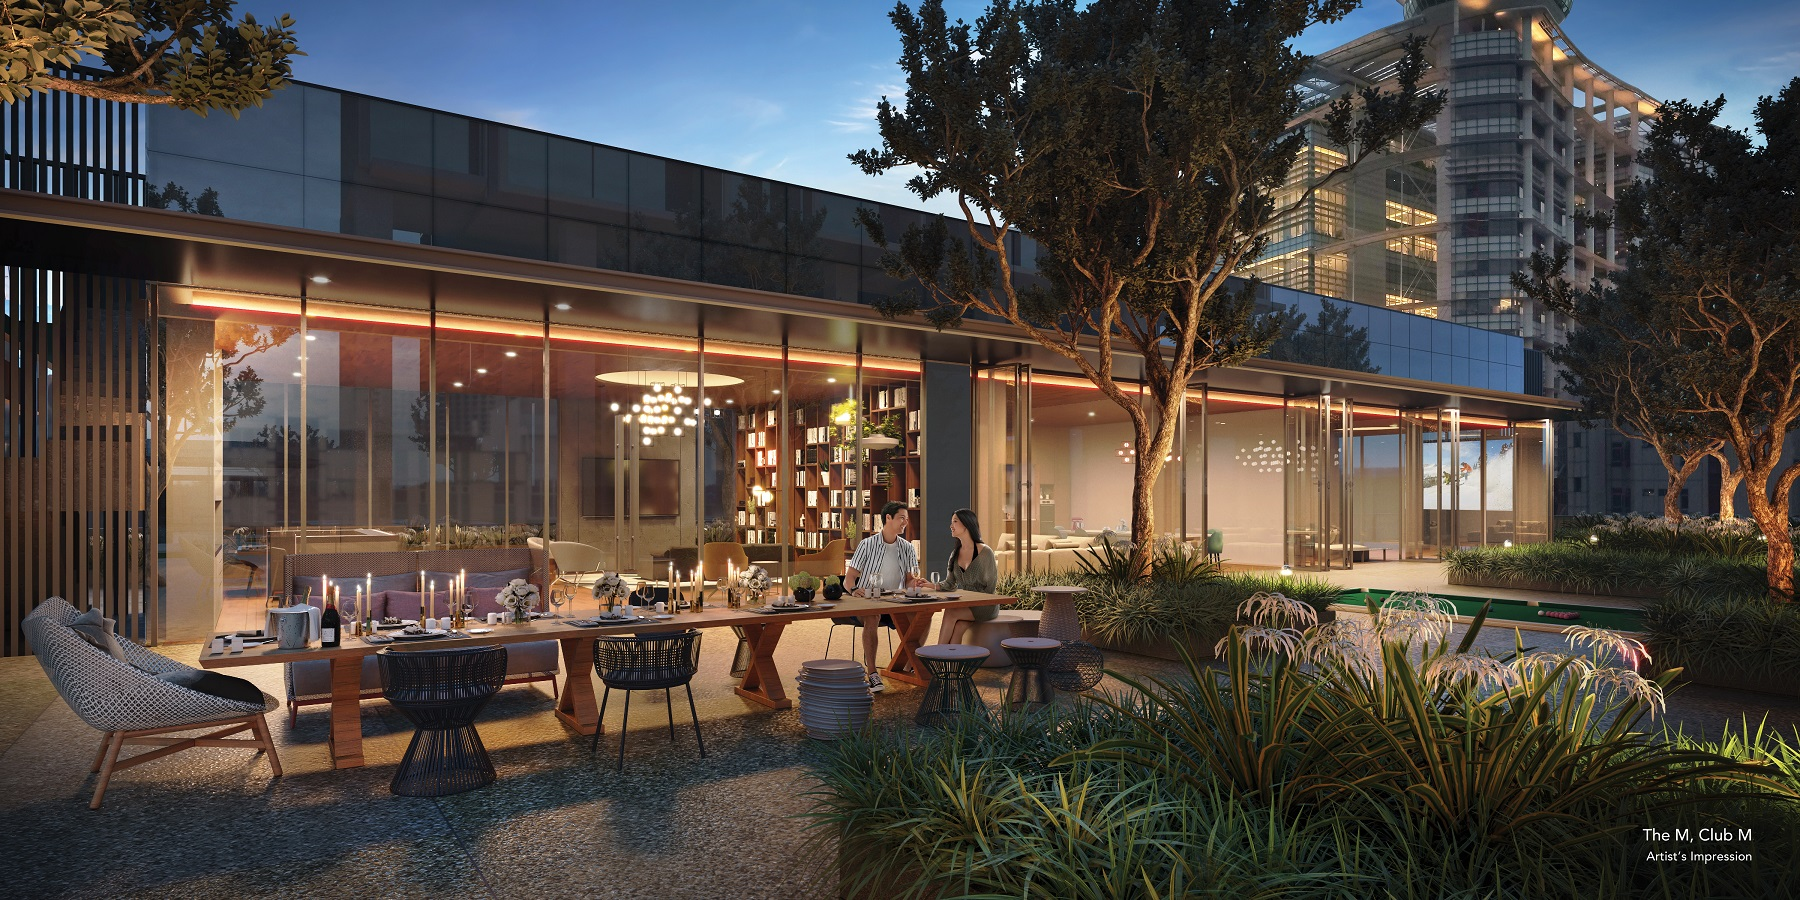 The clubhouse called Club M is over 3,000 sq ft and comes with a residents' lounge, boardroom, multi-purpose room, a gaming room and a baking studio (Photo: Wing Tai Asia) - EDGEPROP SINGAPORE